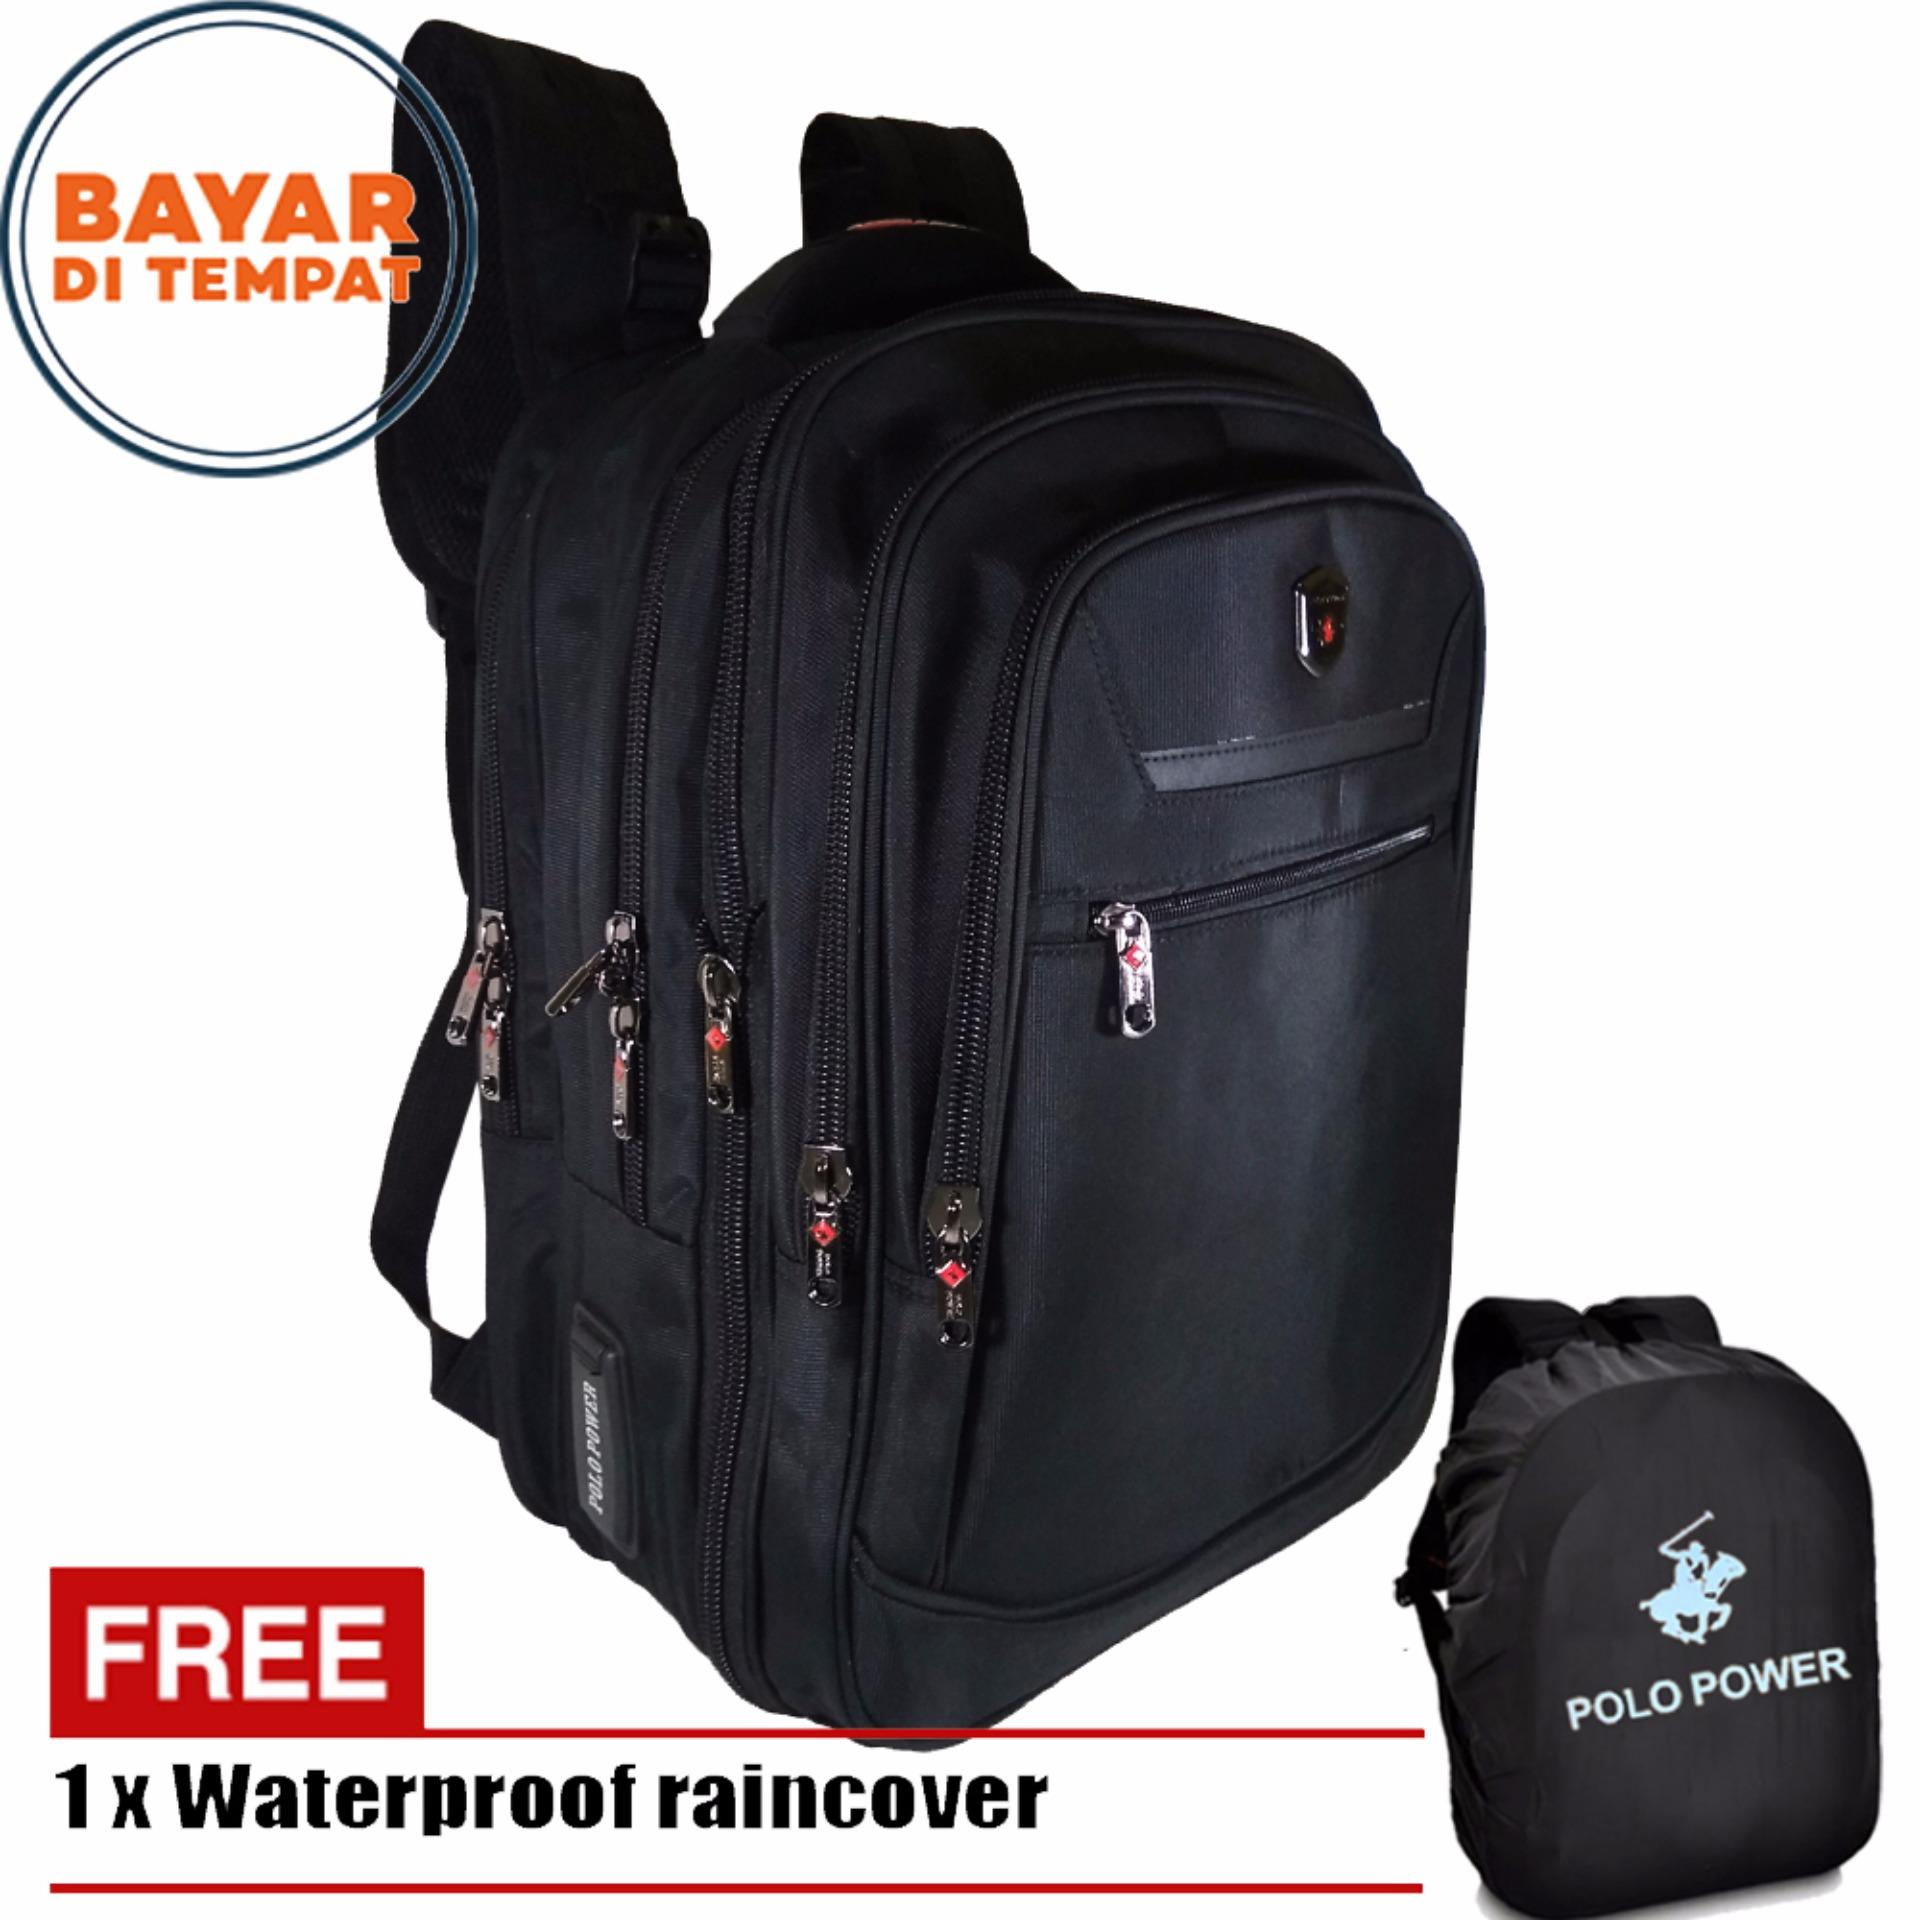 Beli Barang Polo Power Tas Ransel Pria 18 Inchi Expandable 185003 Highest Spec Polo Backpack Import Original Black Raincover Online